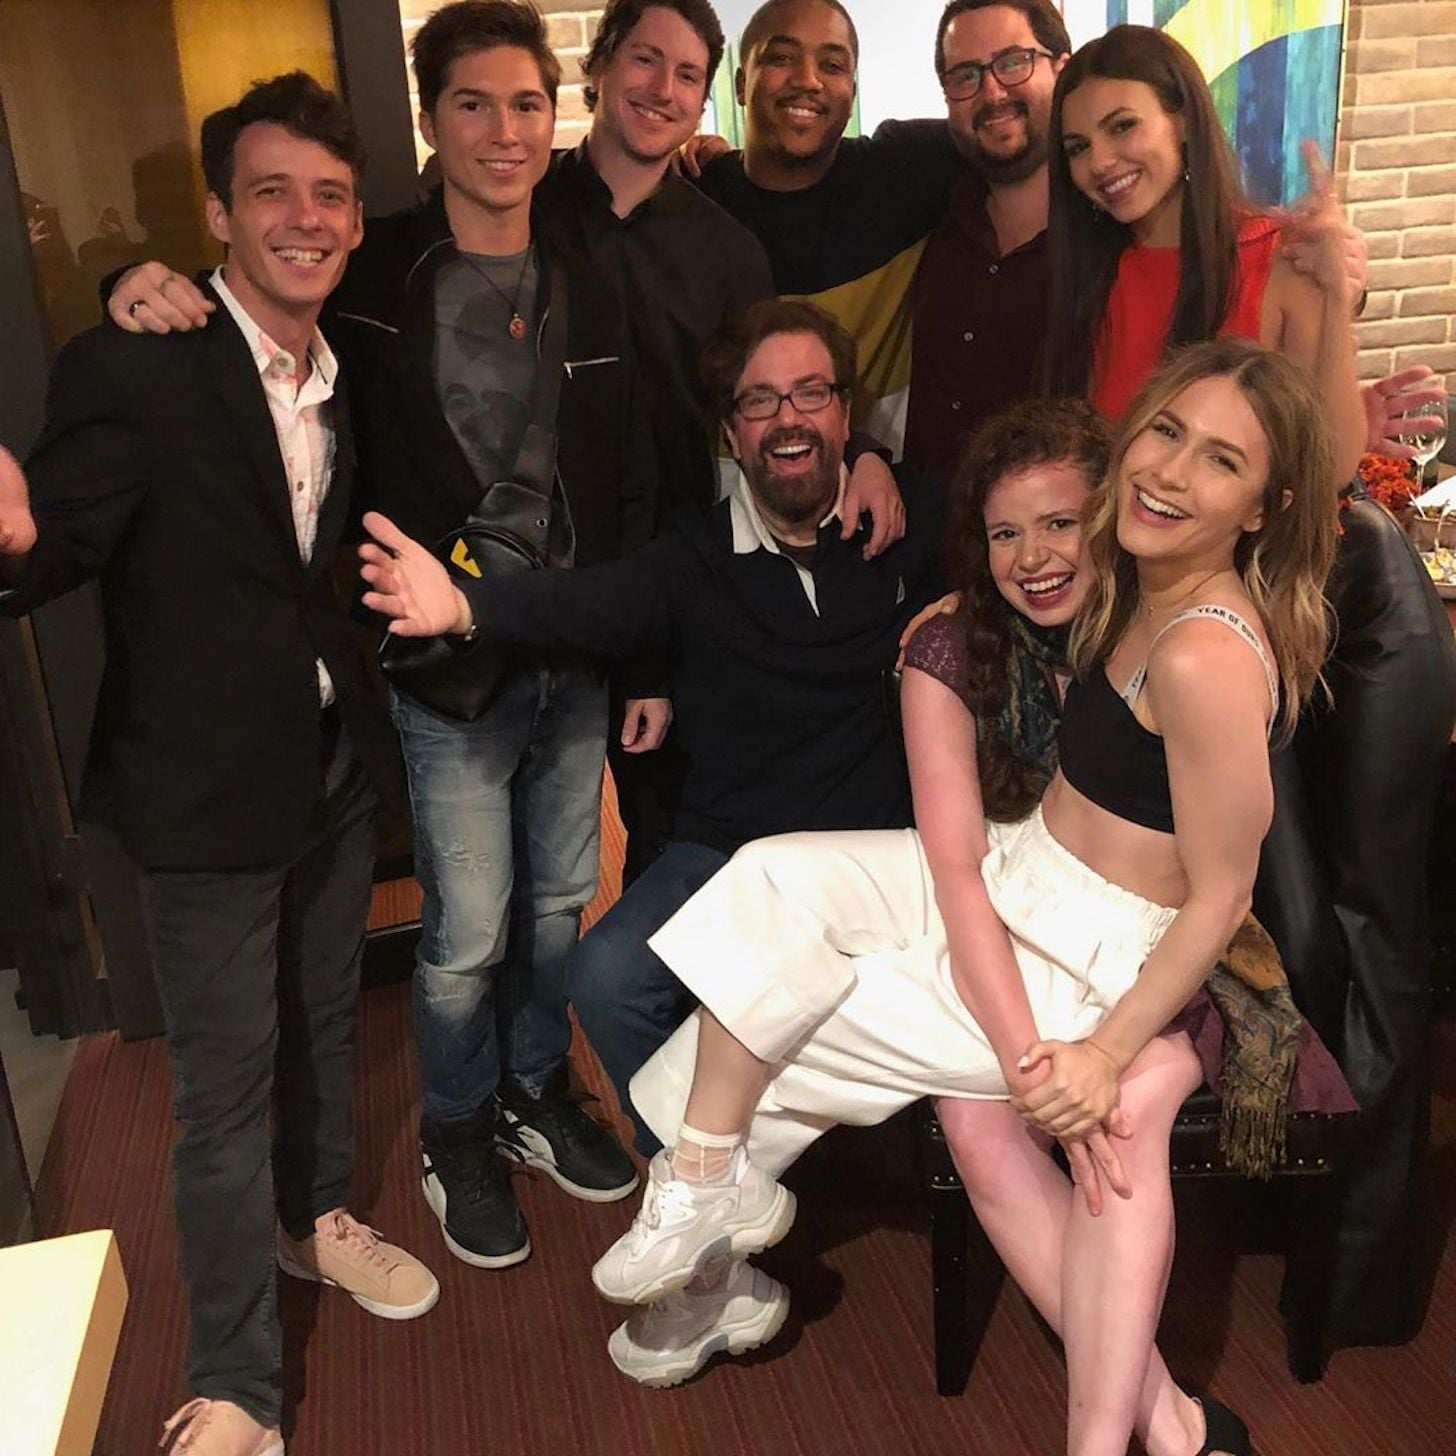 Zoey 101 Cast Reunion Photos Popsugar Entertainment